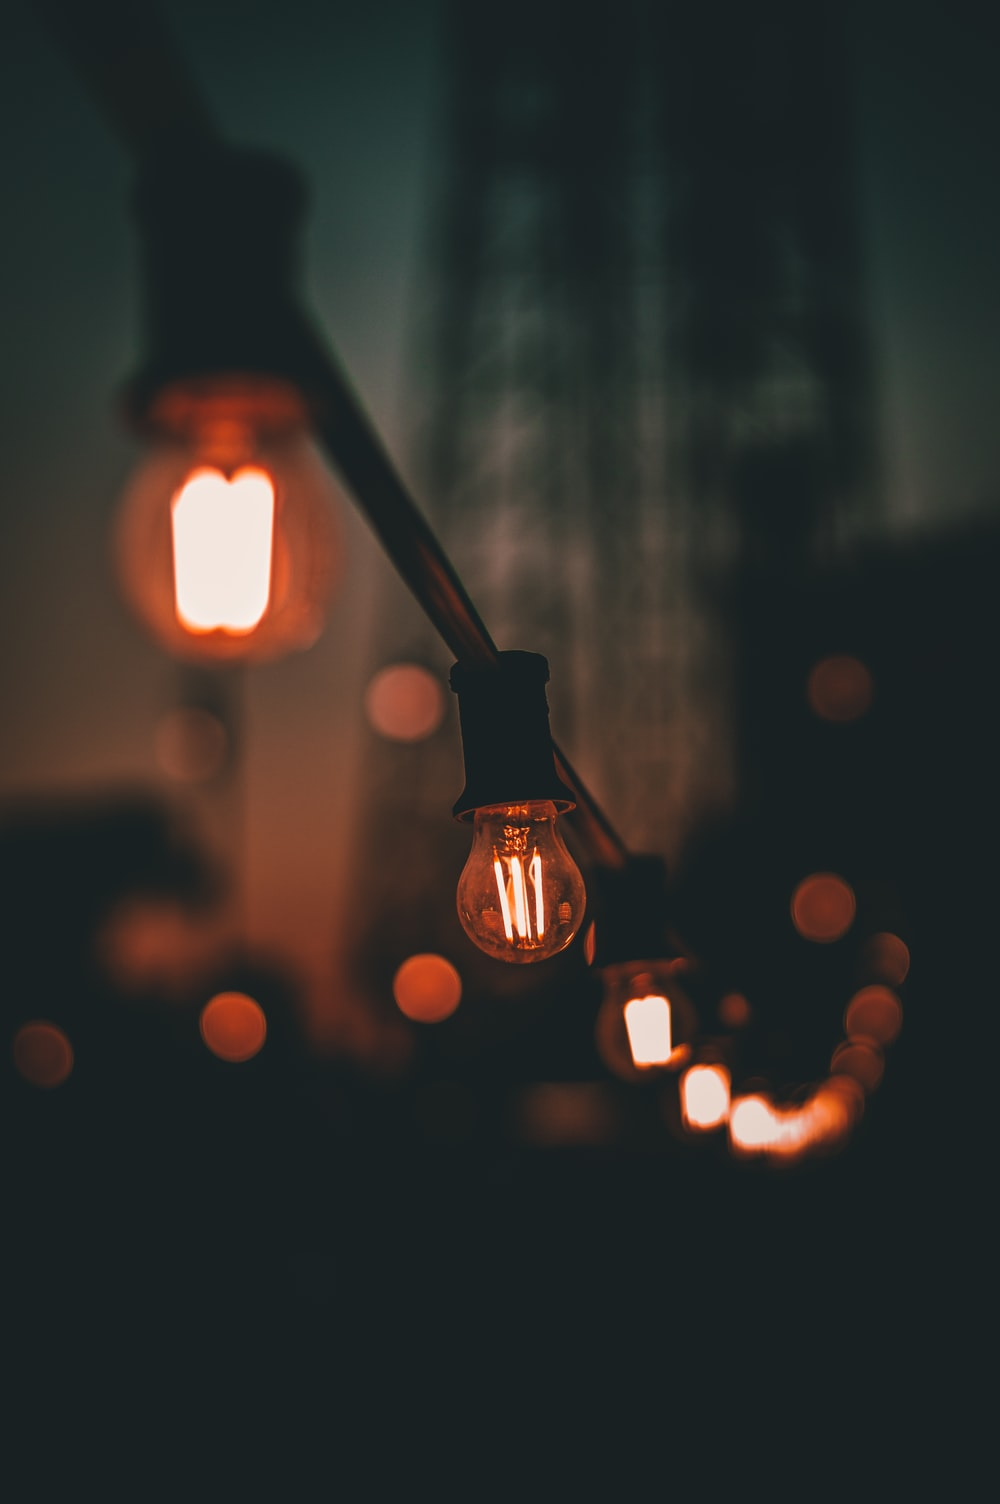 Light Pictures HD